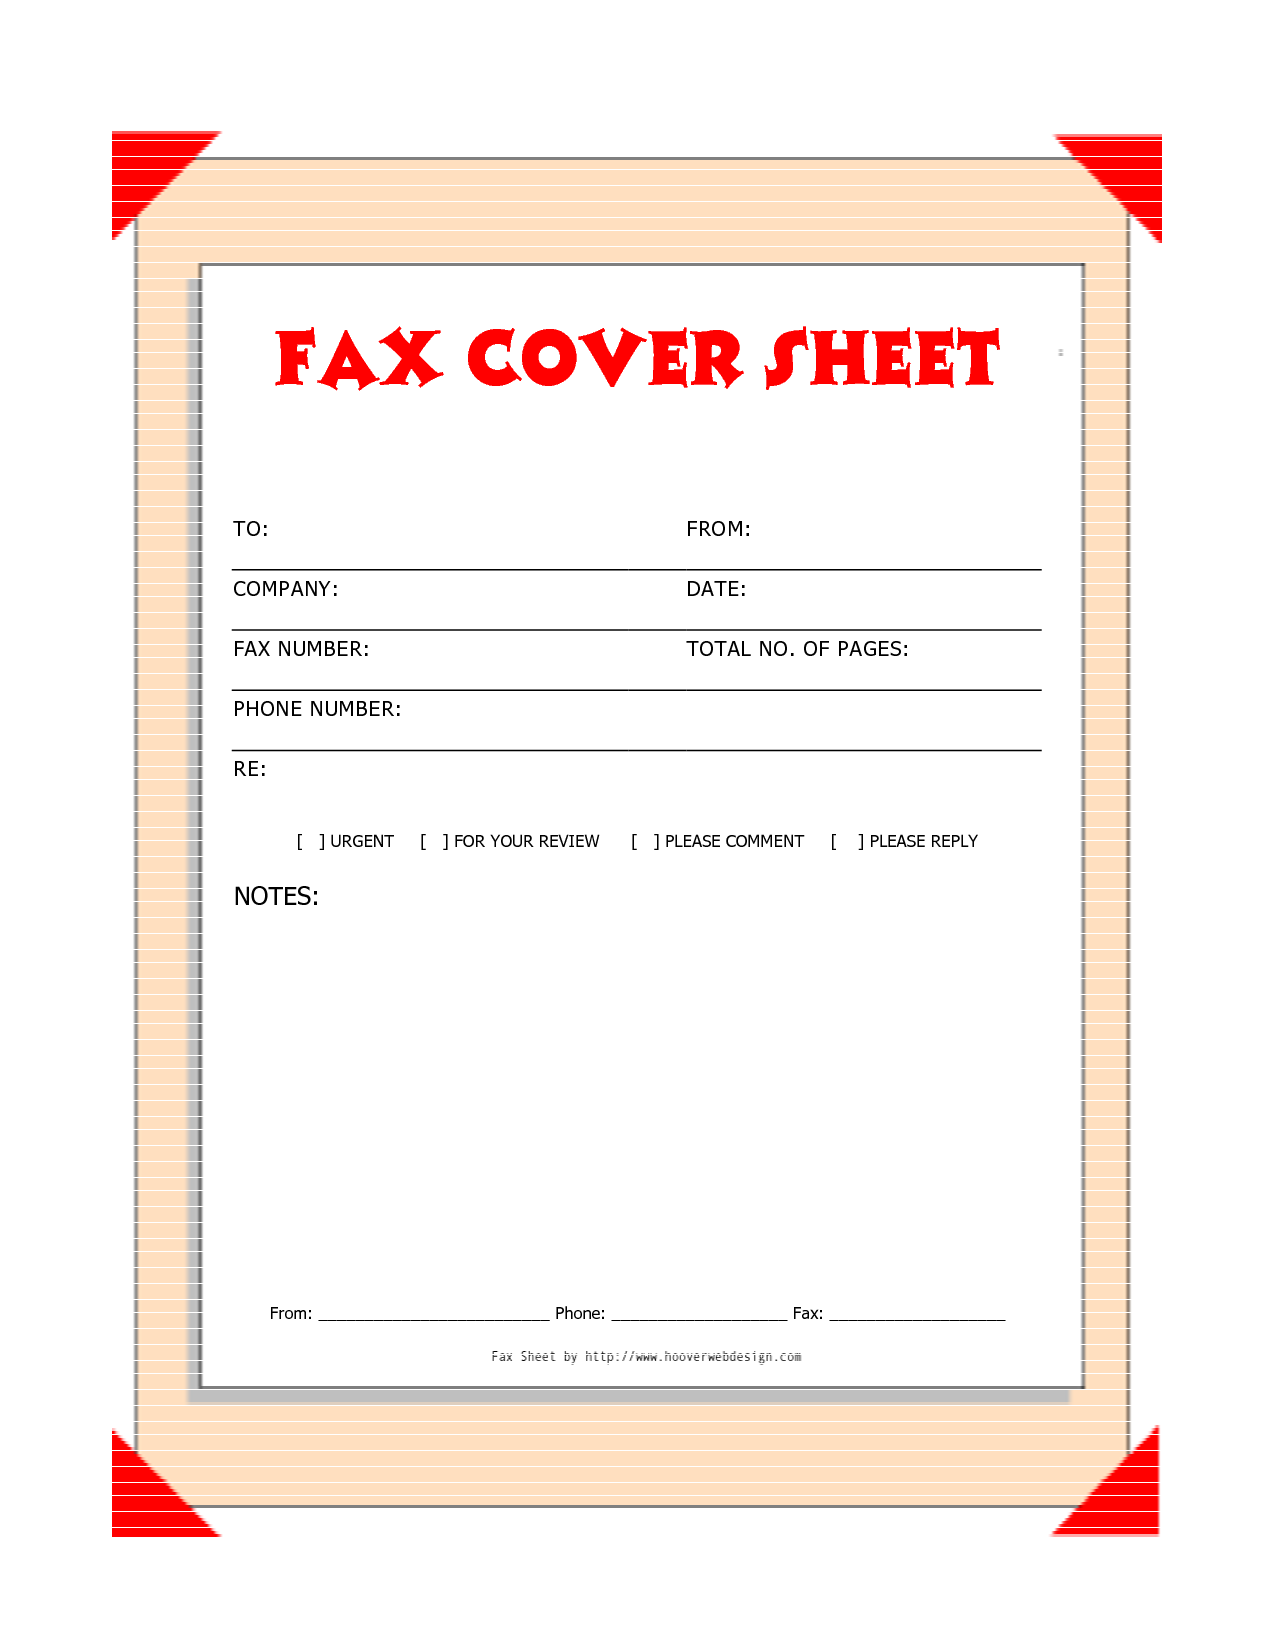 Free Downloads Fax Covers Sheets | Free Printable Fax Cover Sheet Template  Red   Download As  Fax Cover Template Microsoft Word